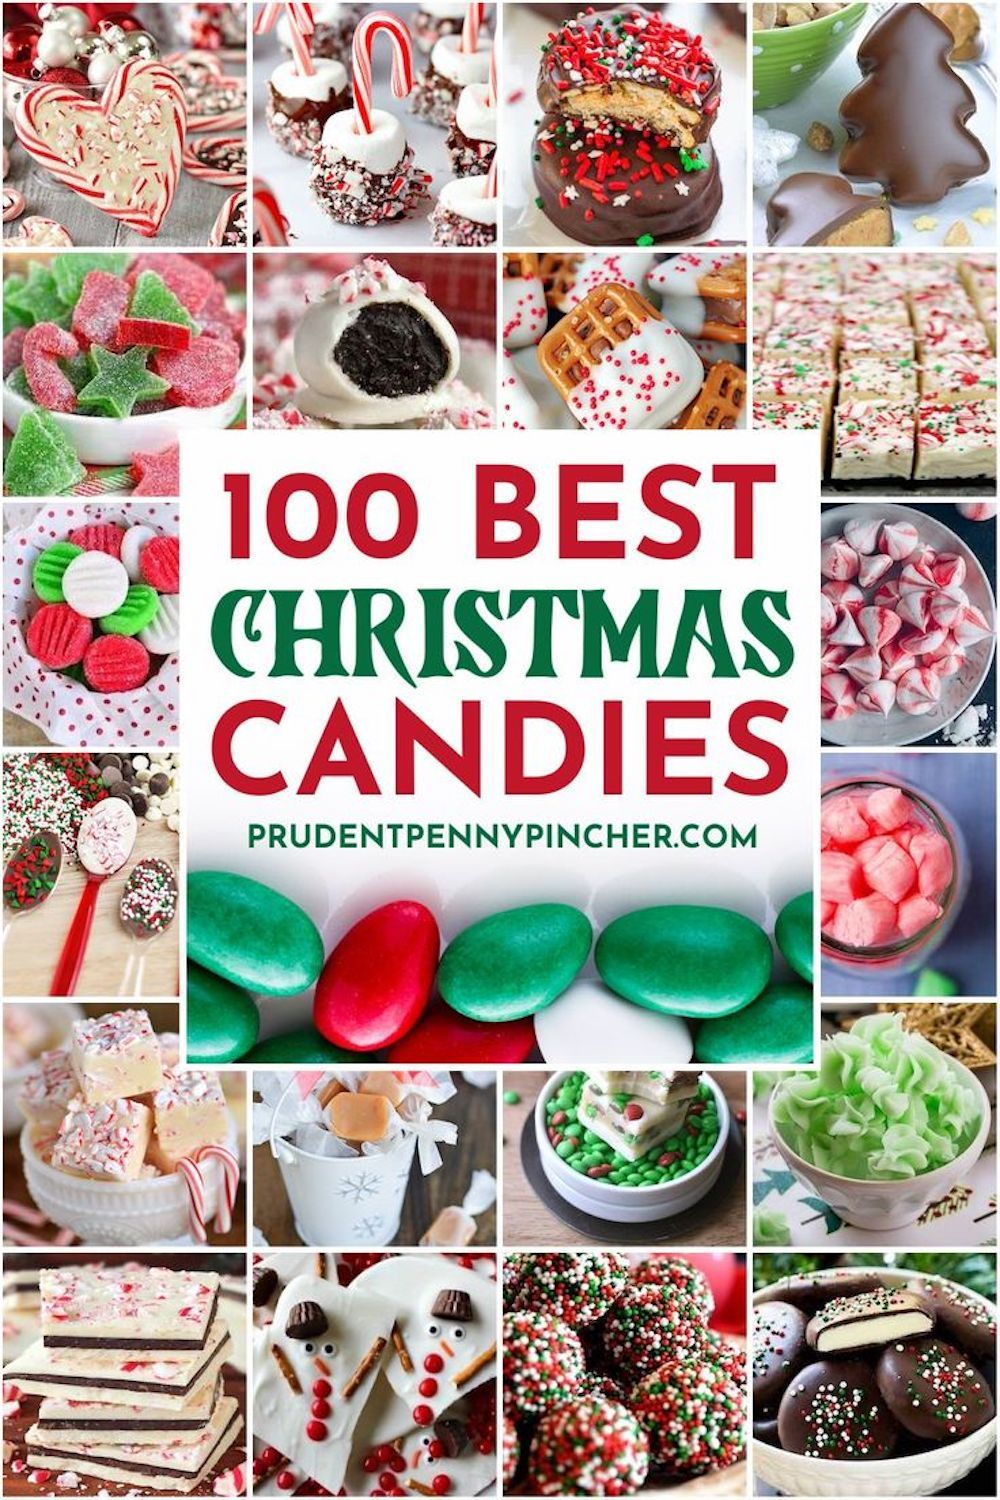 100 Best Christmas Candy Recipes in 2020 | Christmas dessert